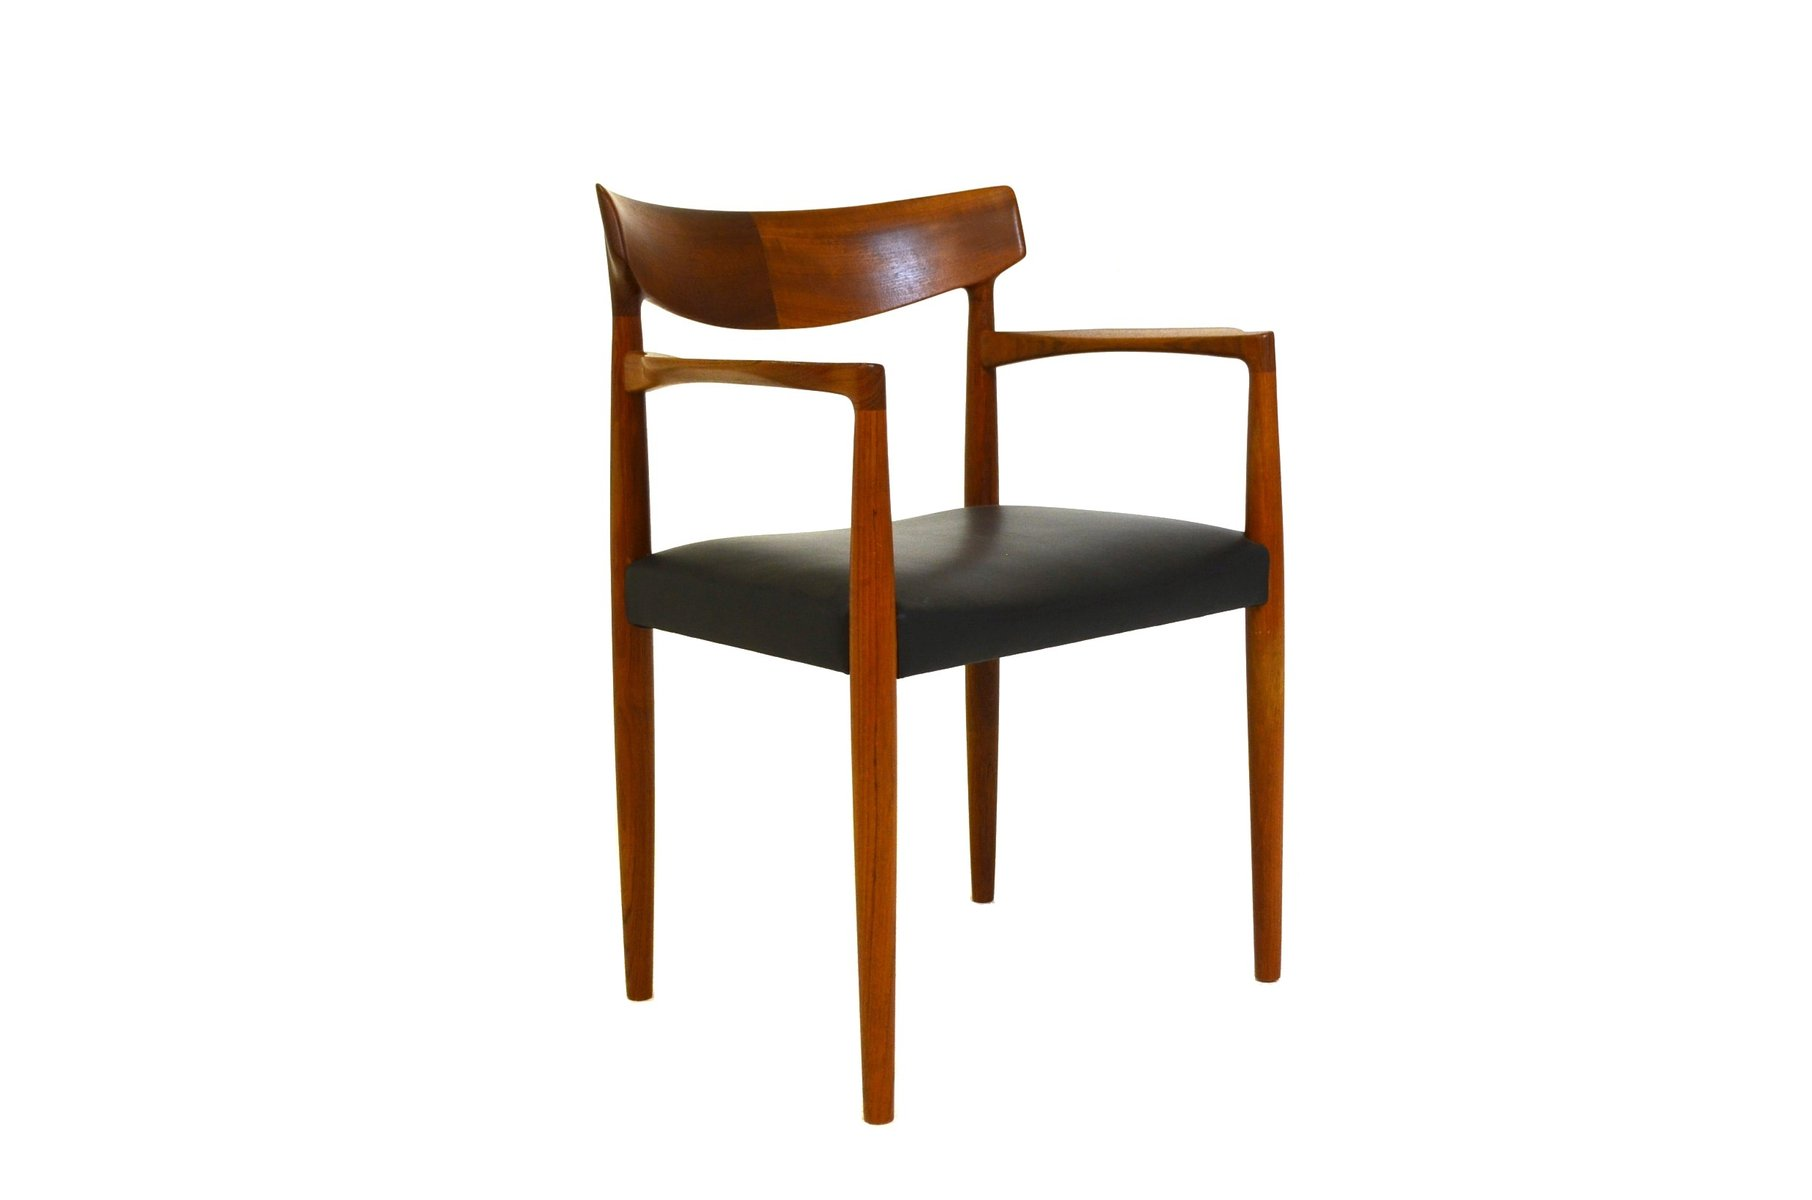 mid century office chair by knud færch for slagelse møbelværk  - mid century office chair by knud færch for slagelse møbelværk s